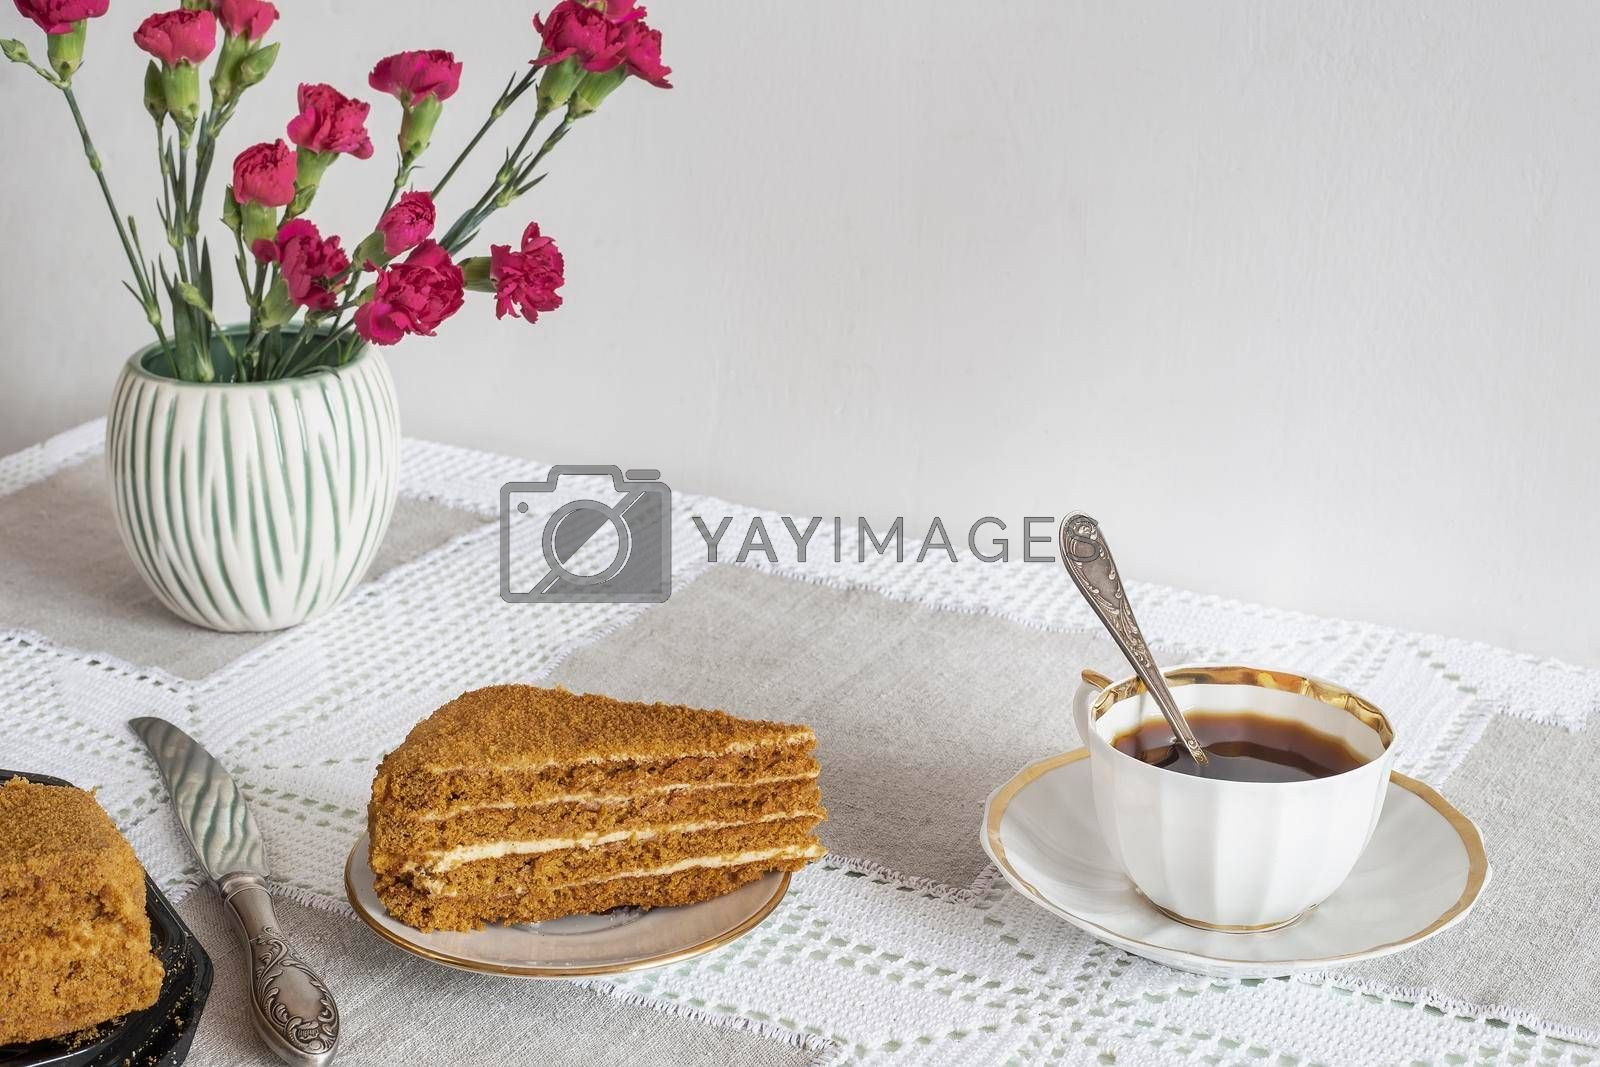 Royalty free image of A decaf hot chicory drink and a cake. by georgina198